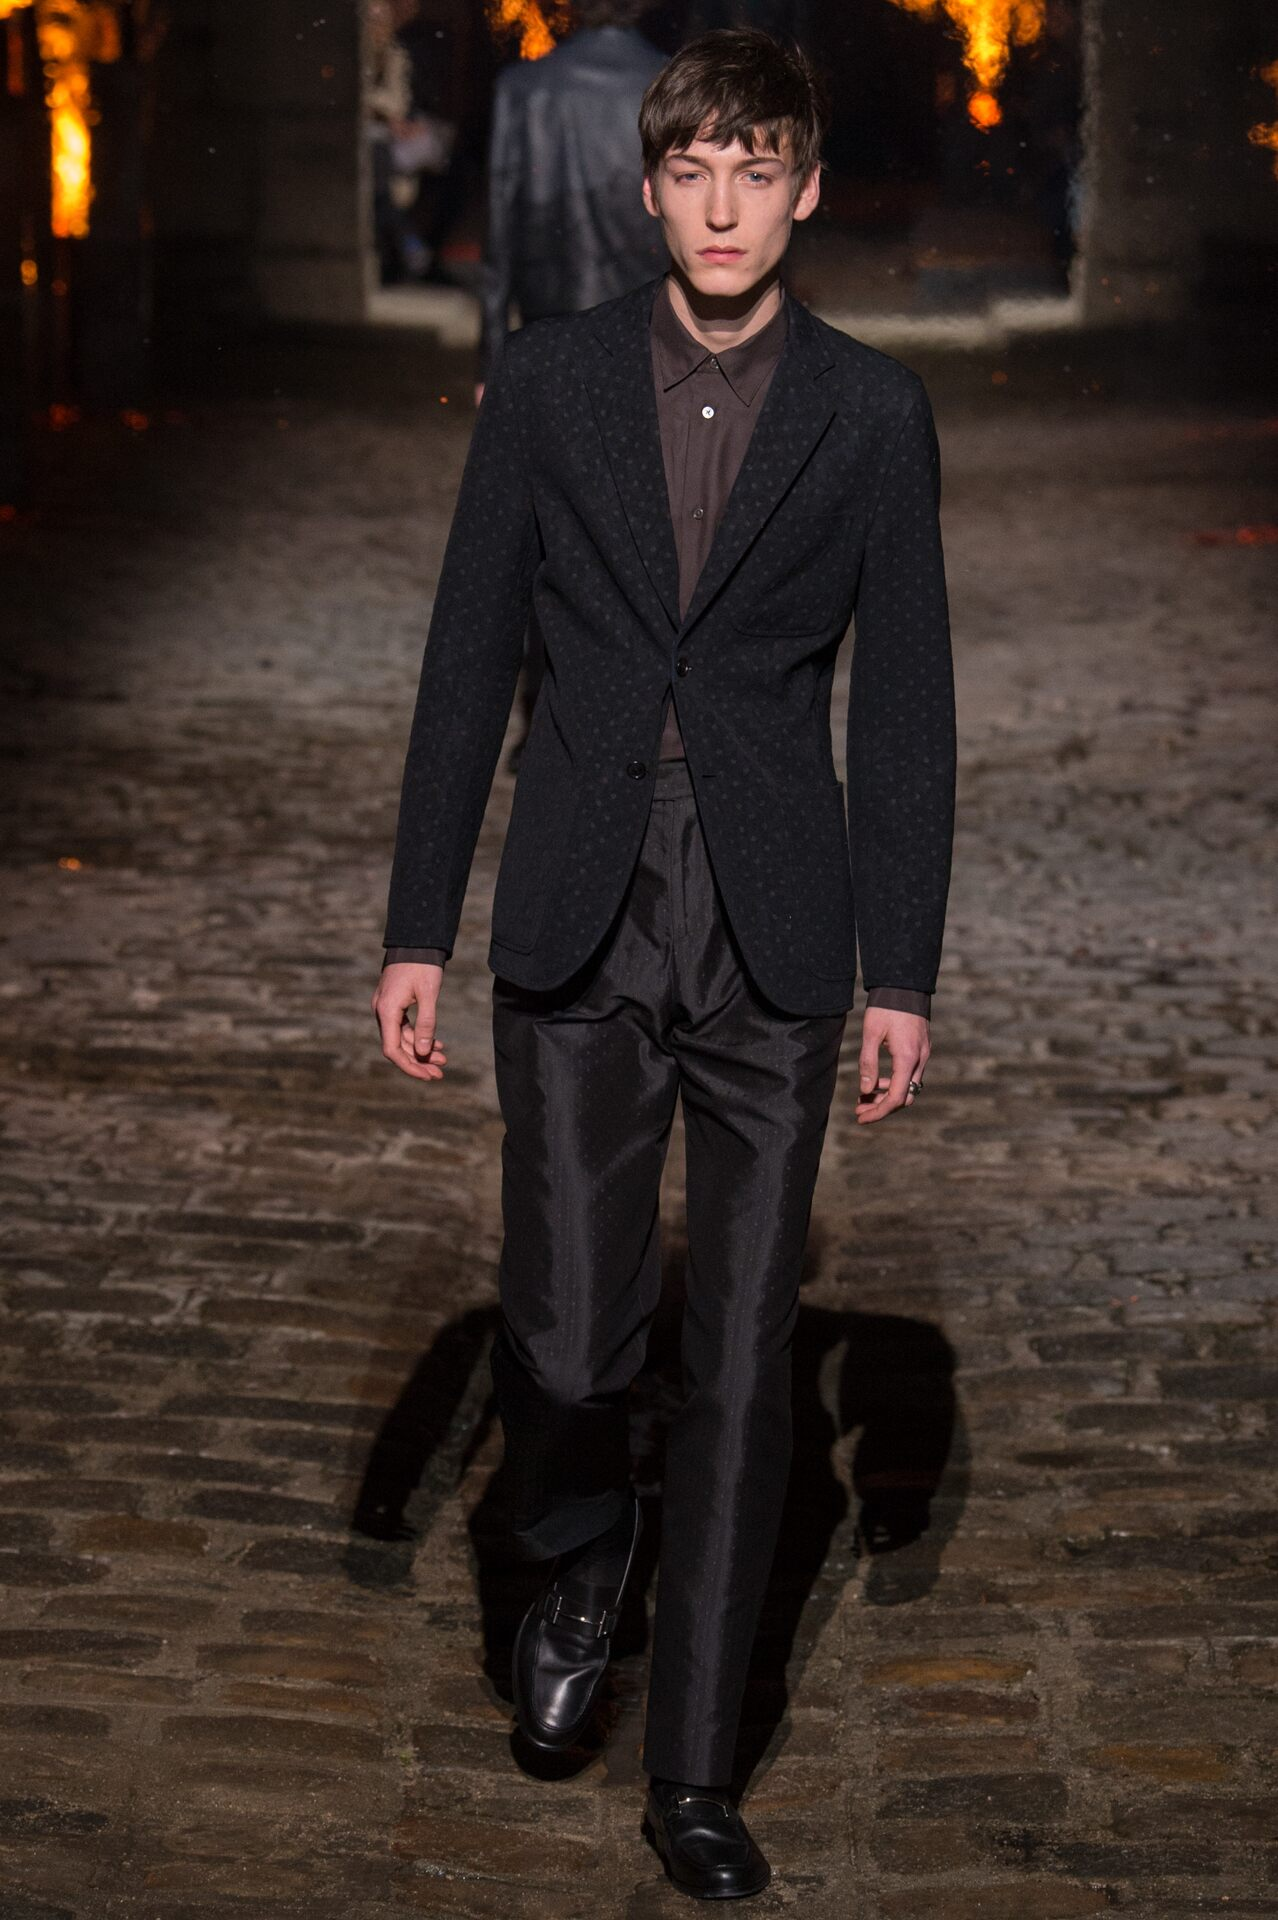 2018 Hermès Man Winter Catwalk